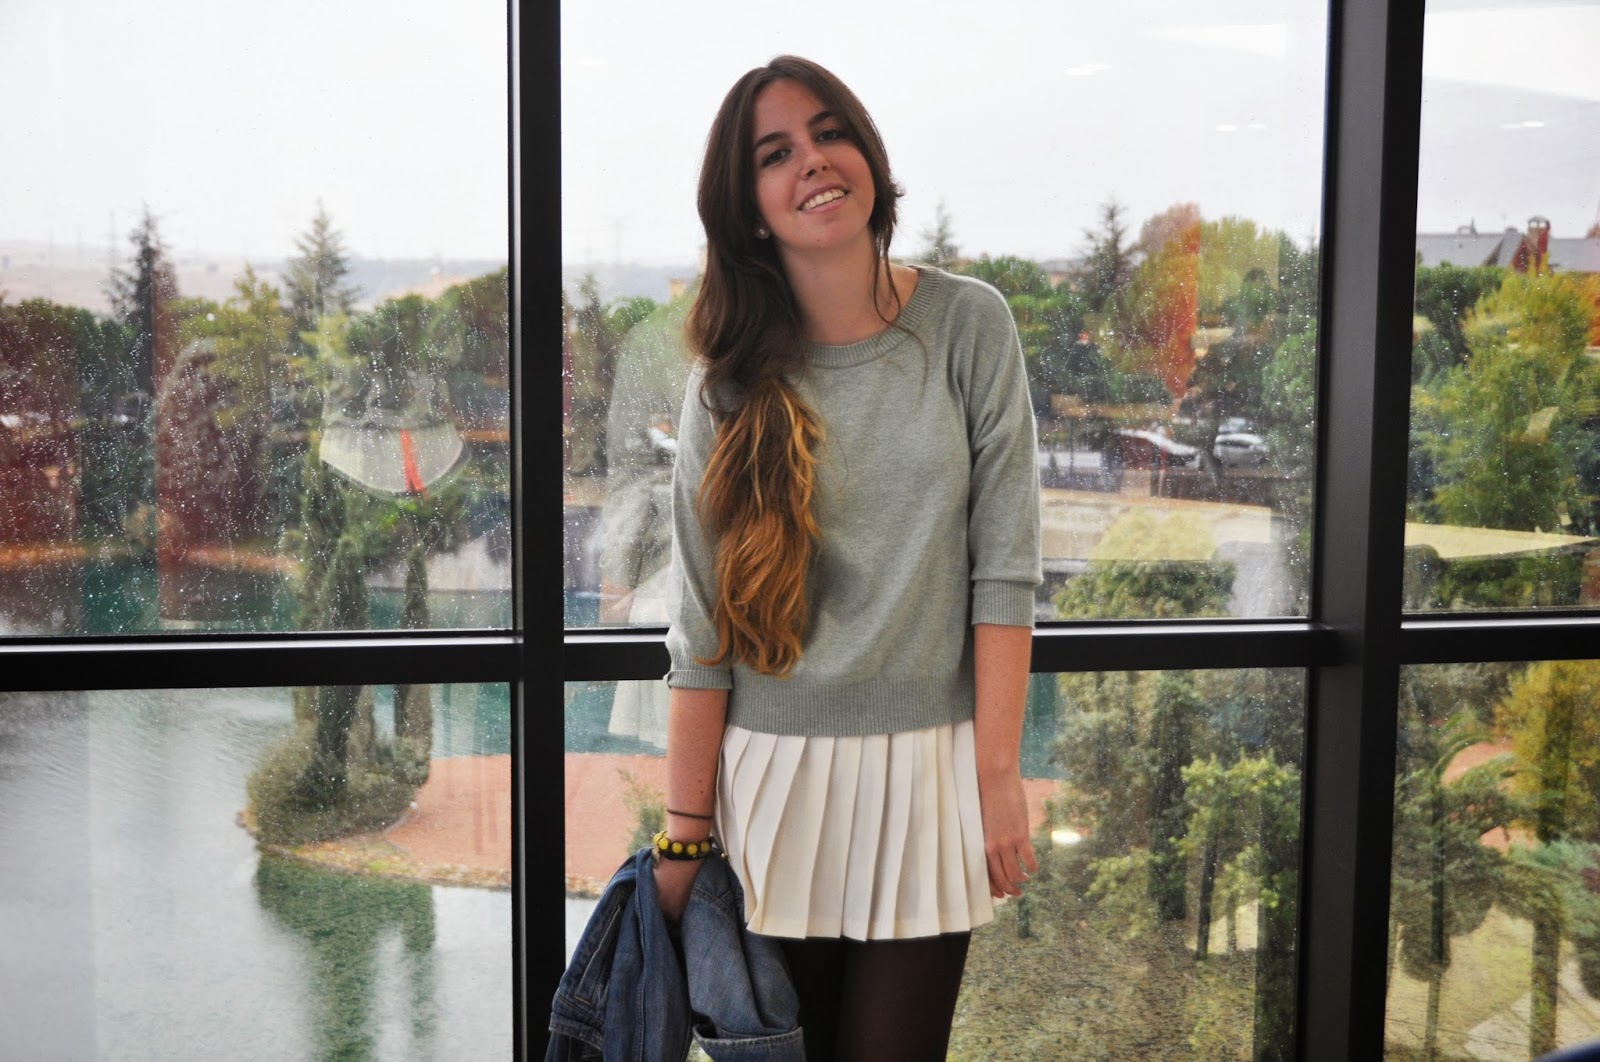 hey vicky hey, victoria suarez, autumn, otoño, girl, fashion blog, blogger, madrid, uem